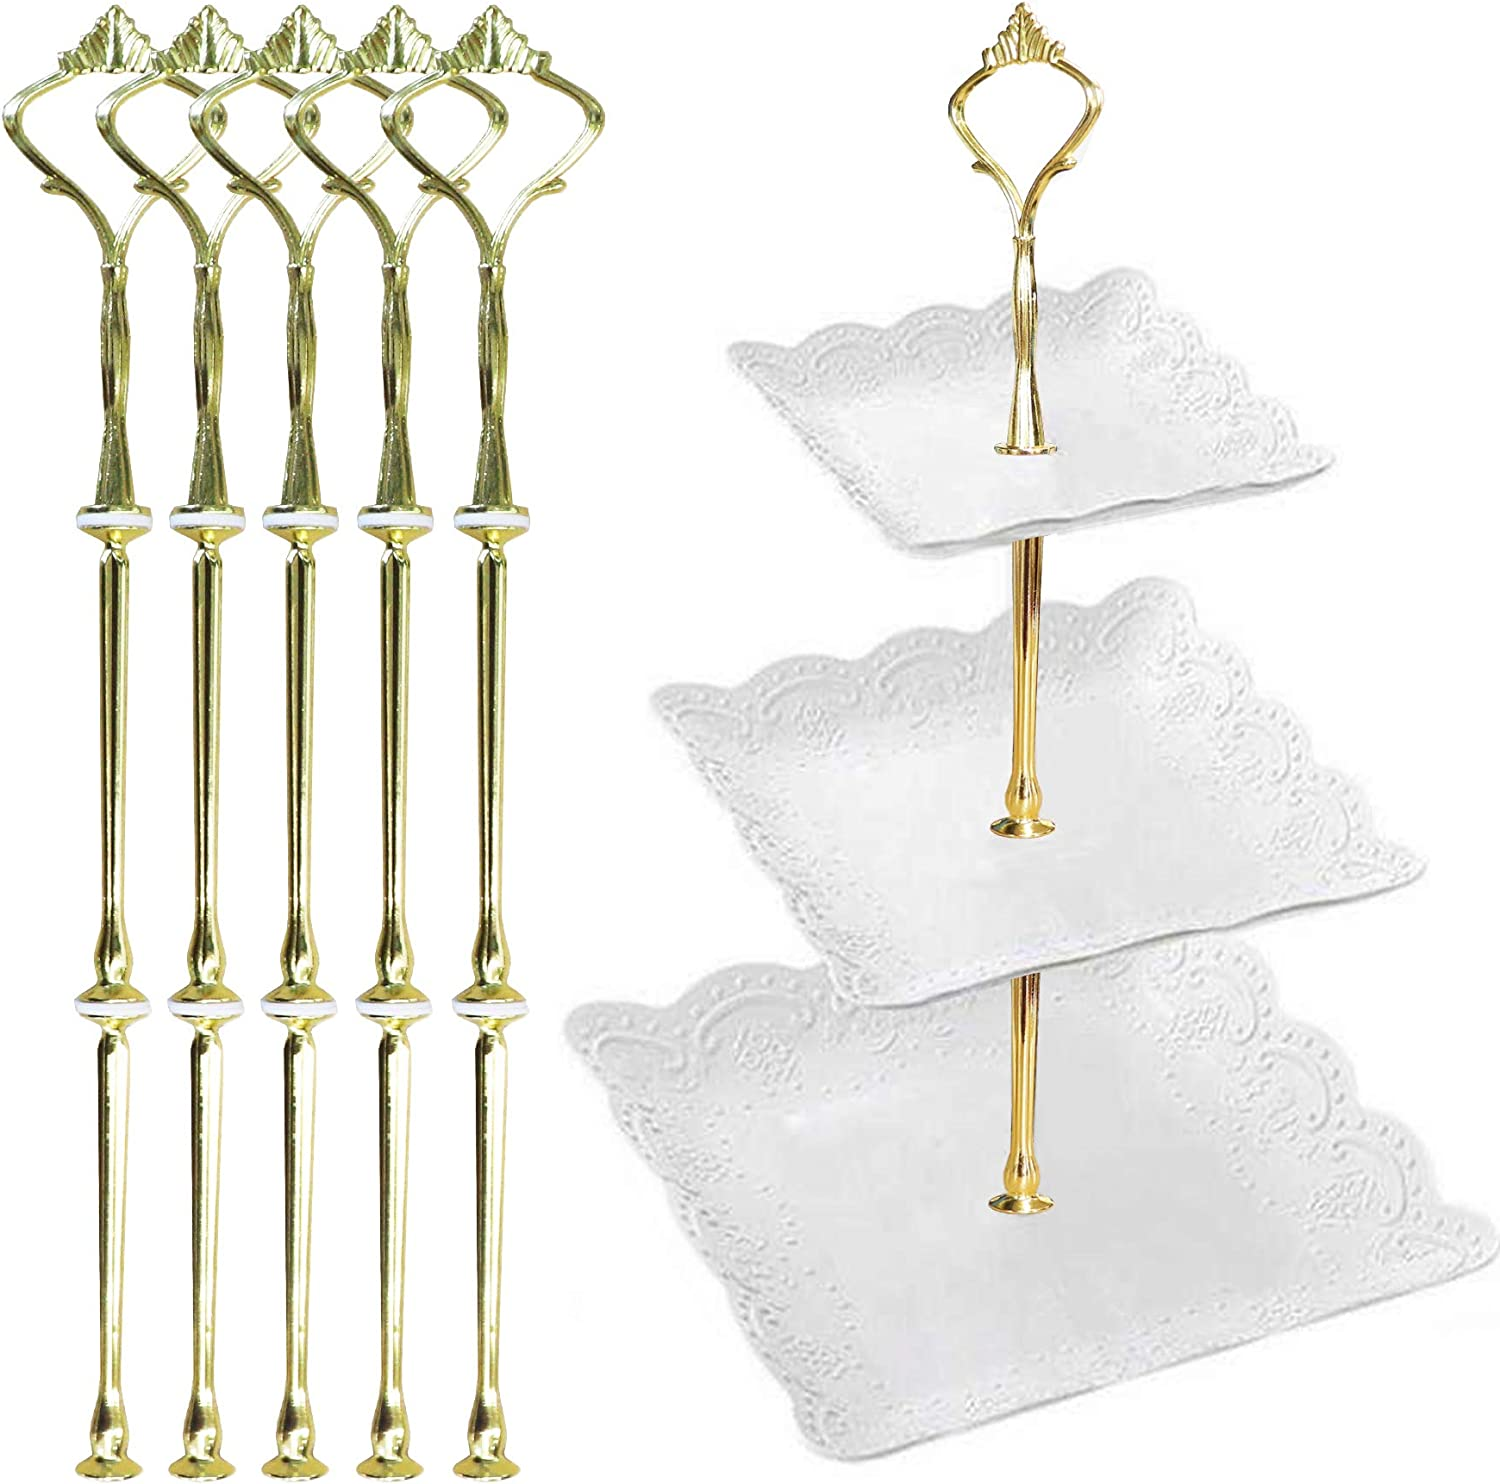 Happy Will 5 Sets 3 Tier Crown Cake Stand Fruit Cake Plate Handle Fitting Hardware Rod Stand Holder with Stylus Silver Plates Not Include